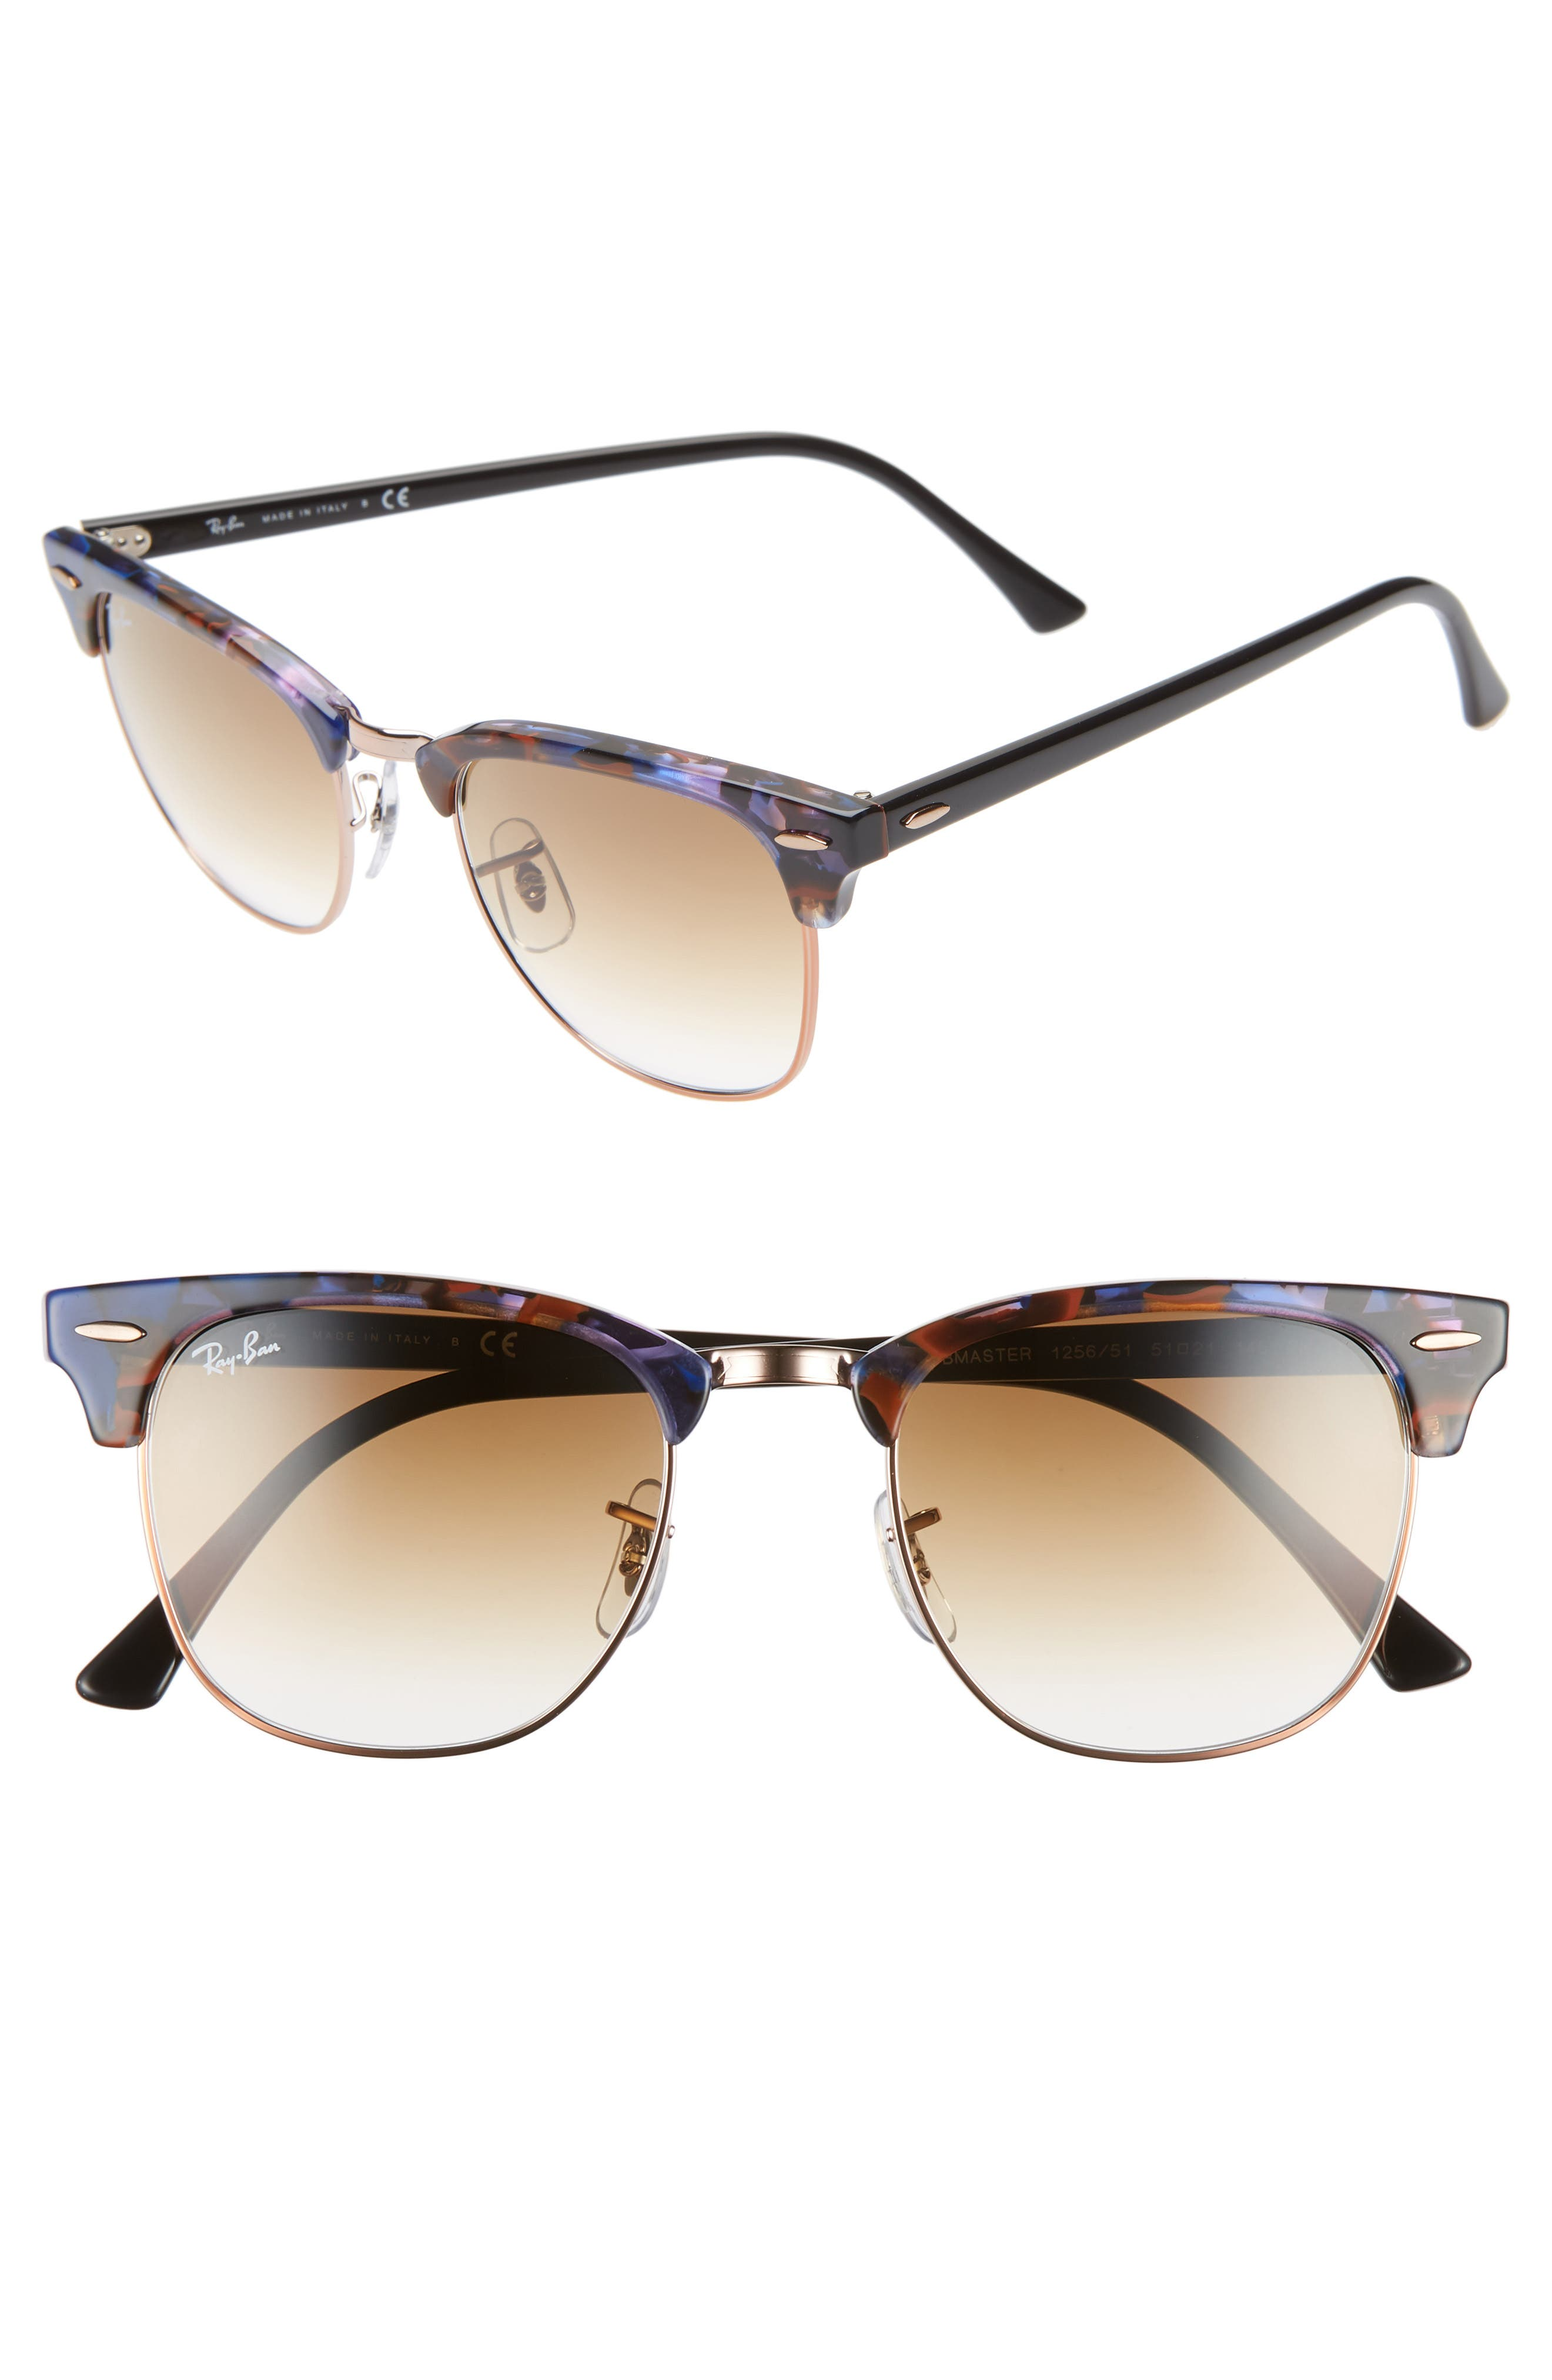 Ray-Ban Clubmaster 51Mm Gradient Sunglasses - Brown/ Blue Gradient